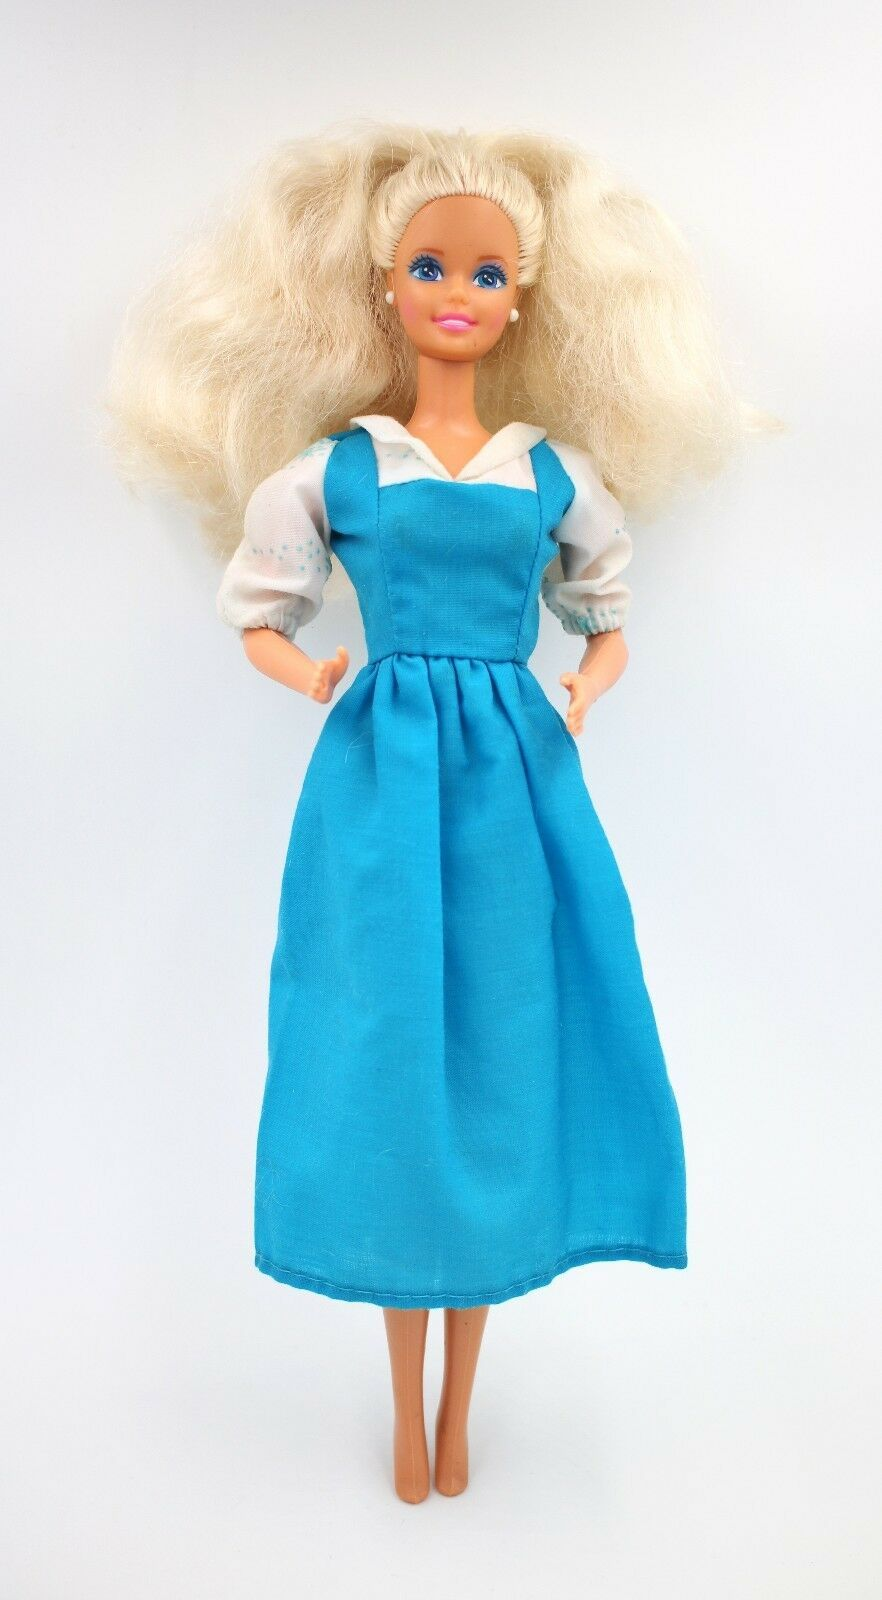 Primary image for Vintage Mattel 1966 Twist & Turn Barbie Doll Platinum Blond Hair Made In China